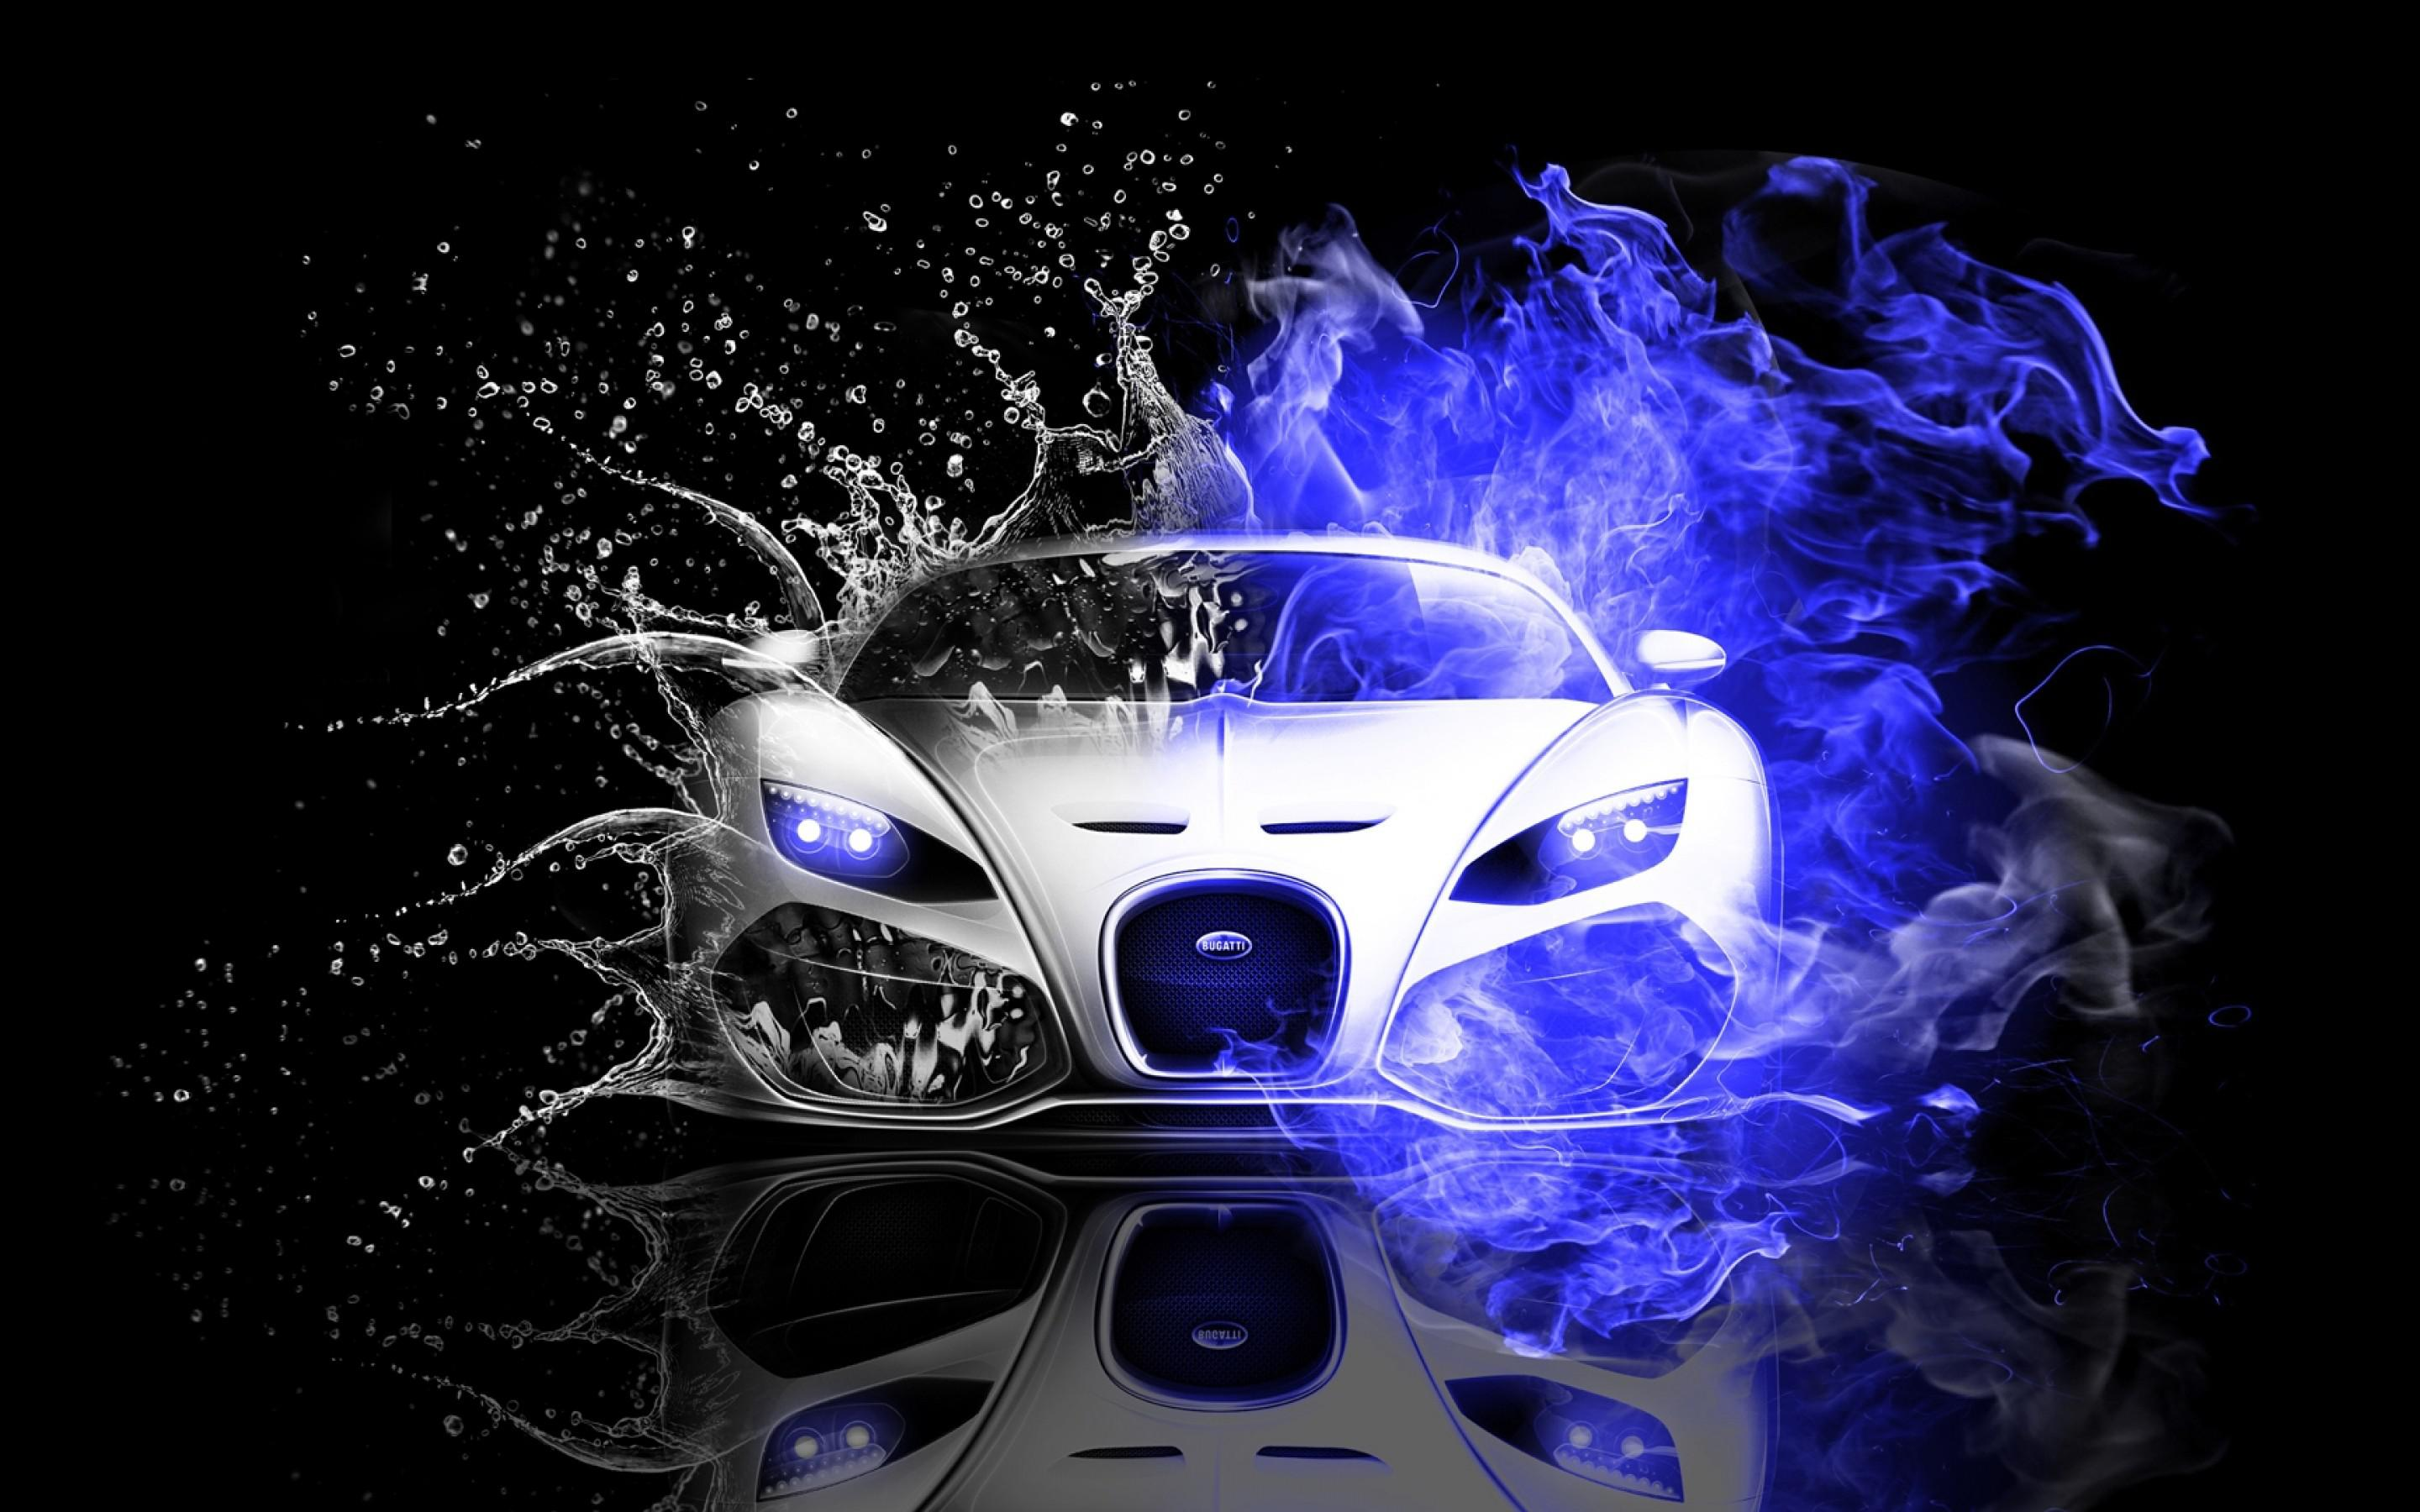 30 Awesome Sport Car Desktop Wallpapers Android Stock 2880x1800